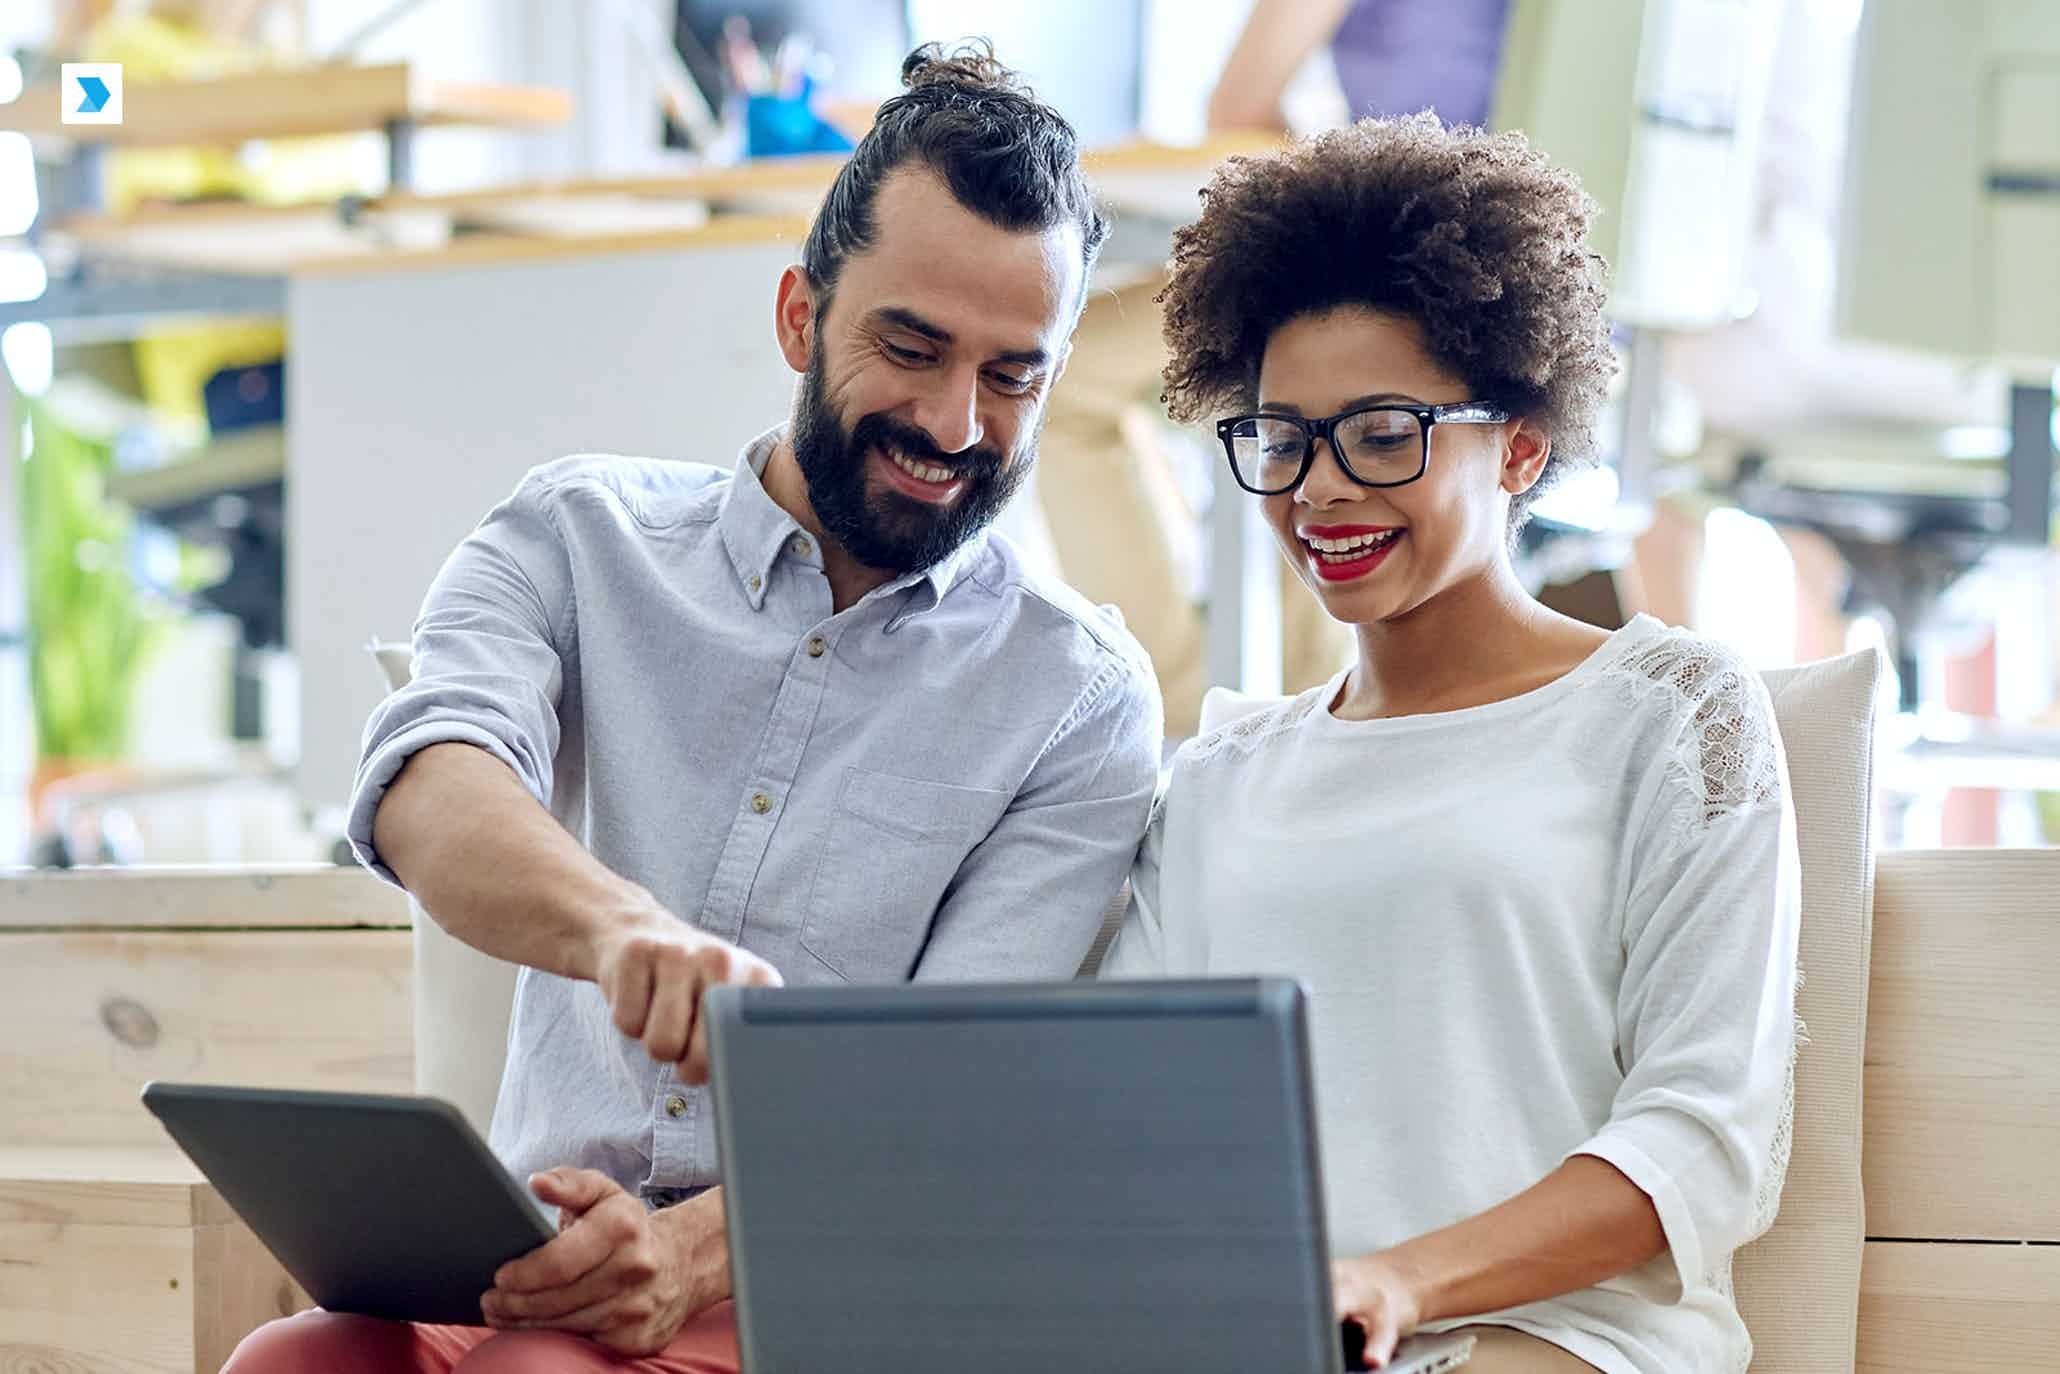 5 ways to effectively market your business online